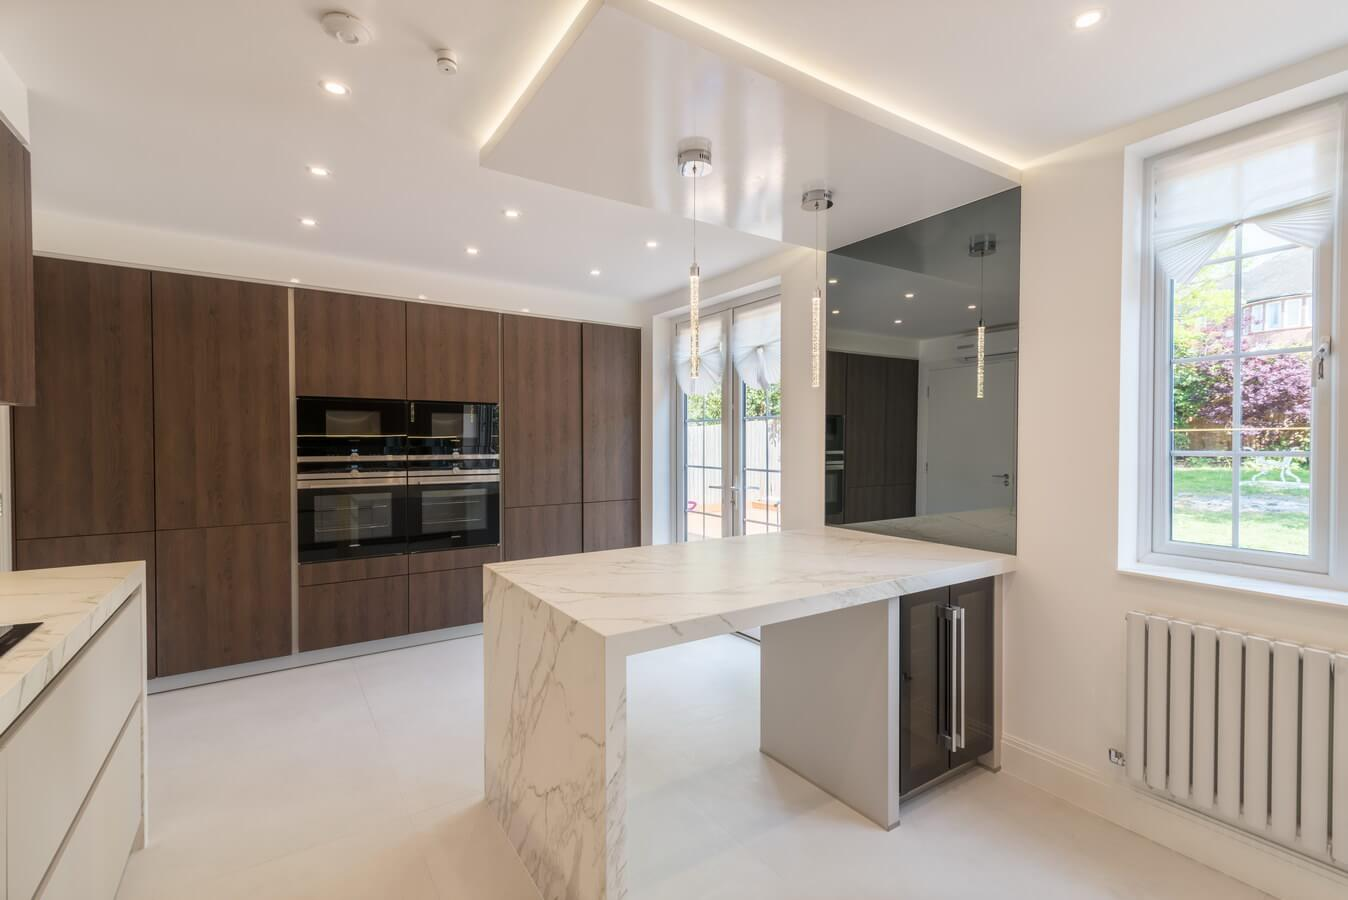 Schuller-Fitted-Kitchen-German-North-London.jpg